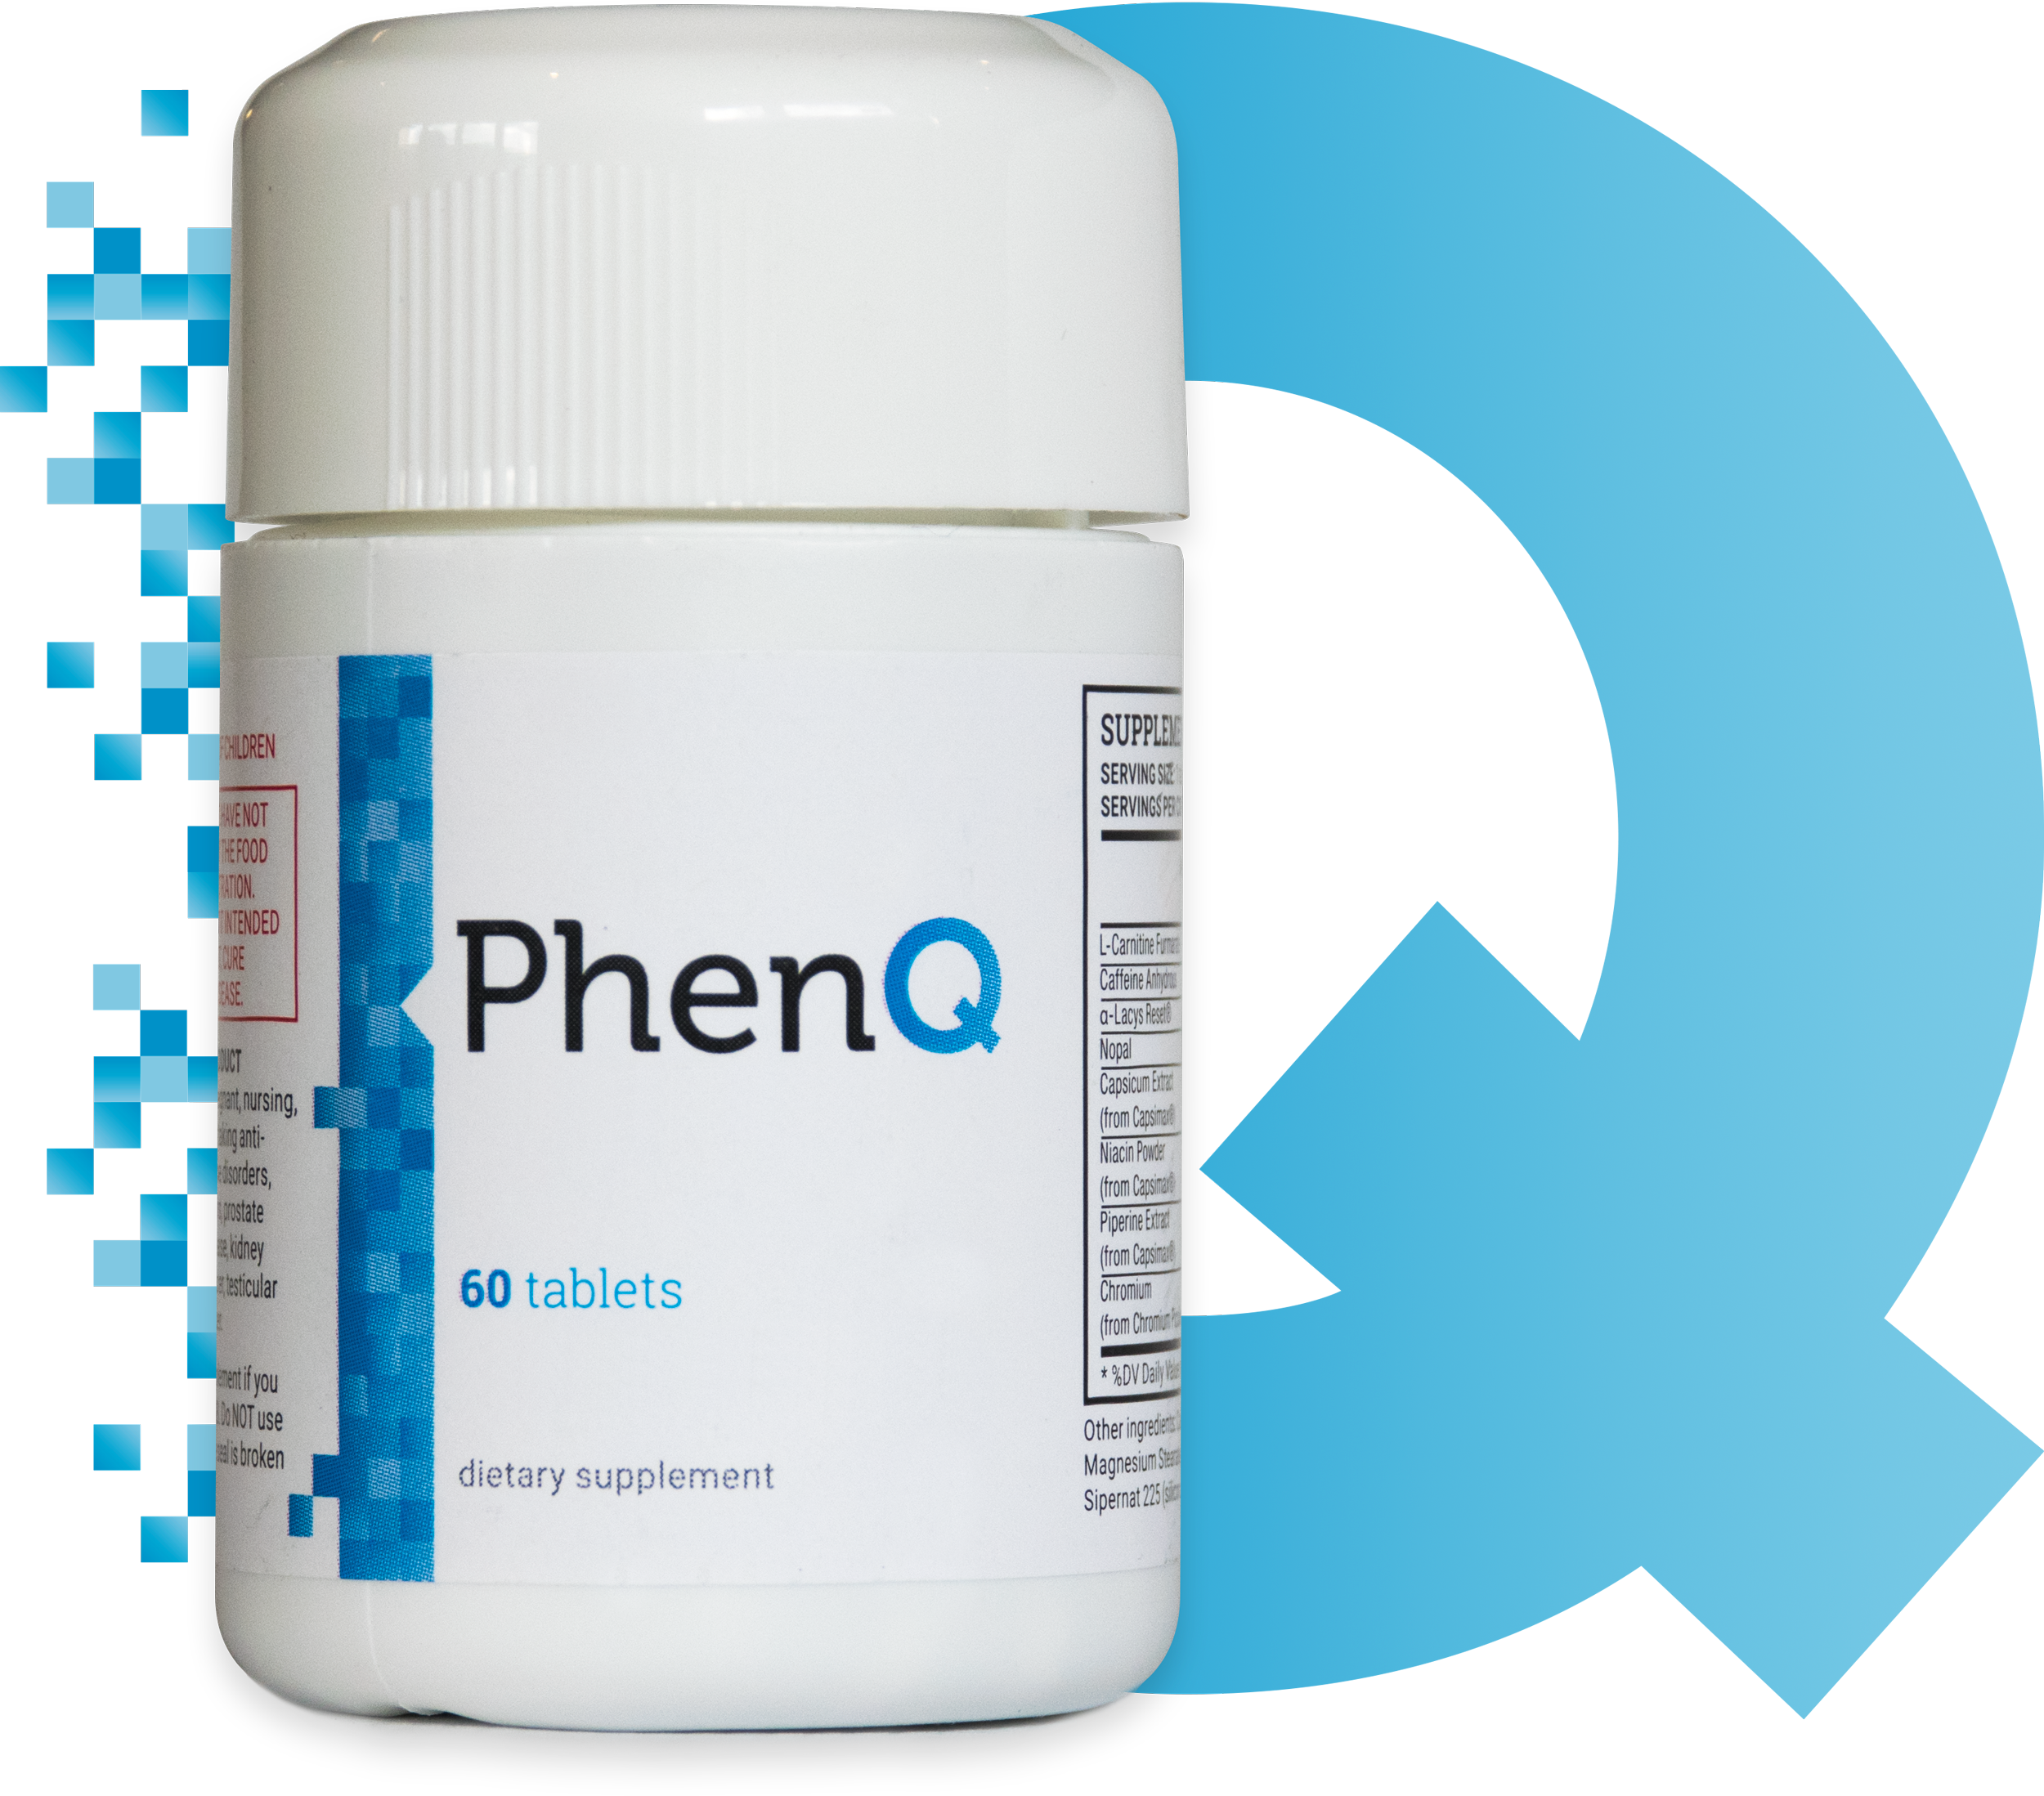 PhenQ for the best price